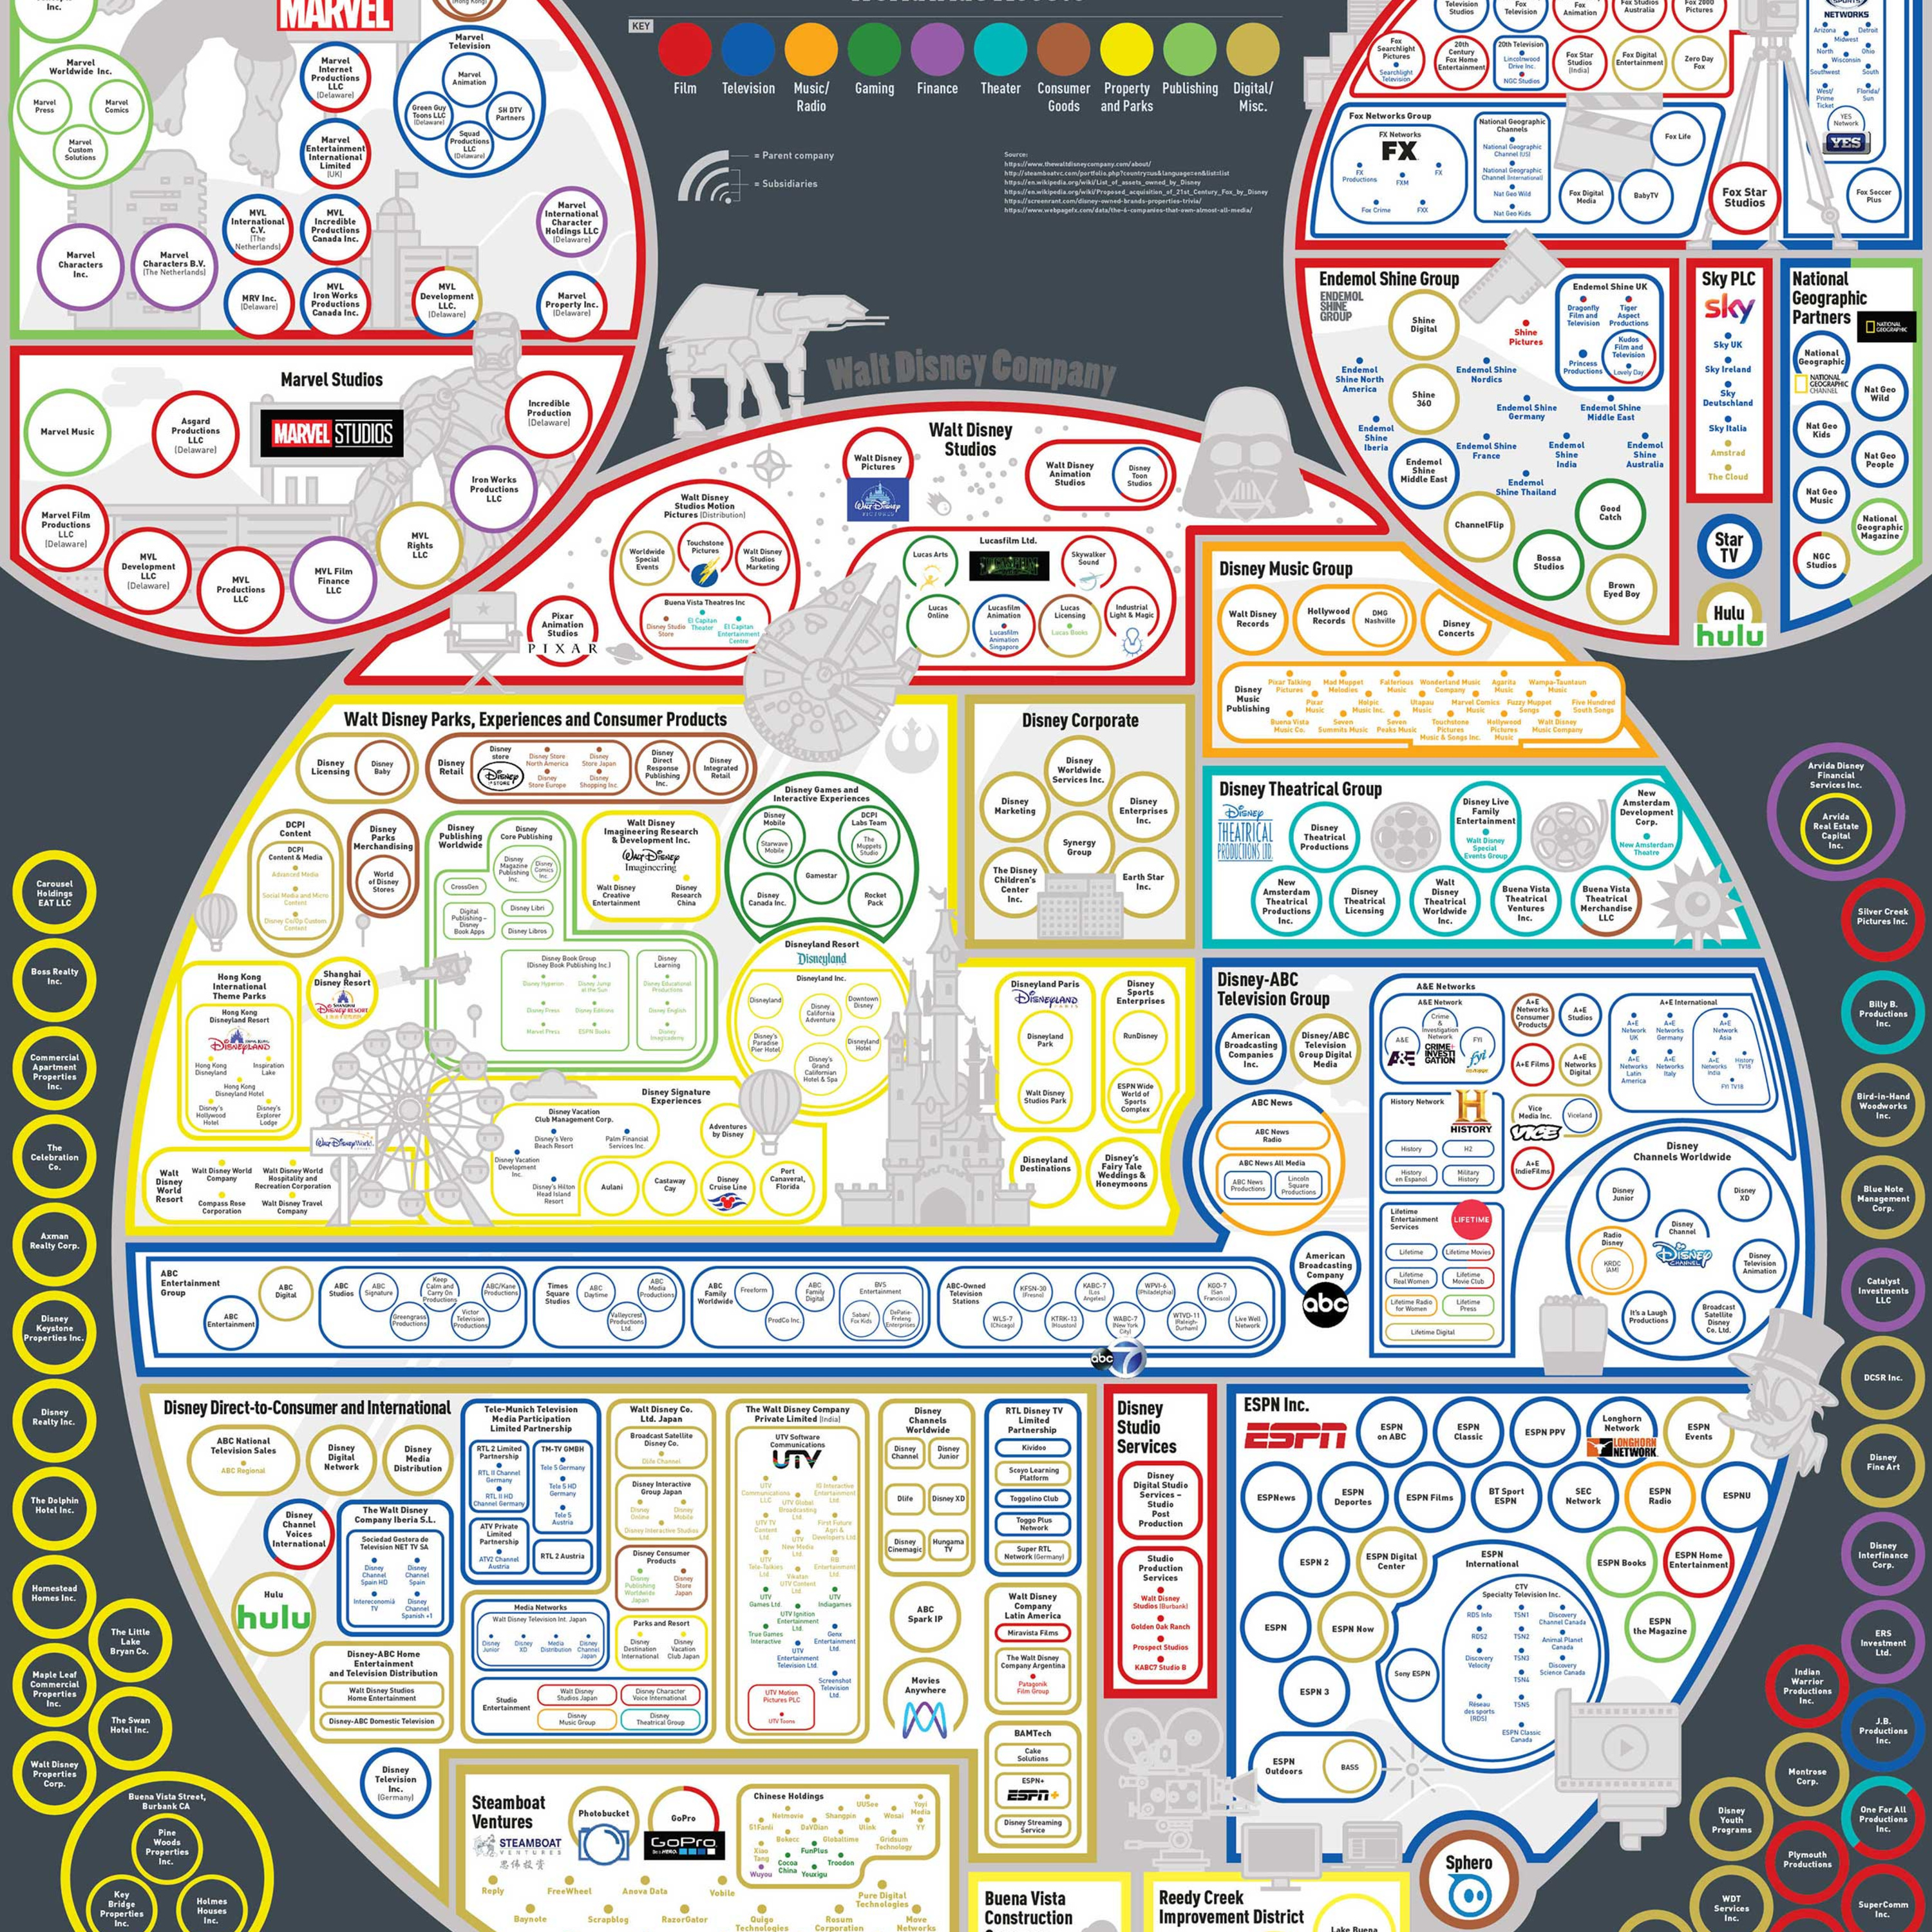 Episode #350 - a look at some of Disney's media relationships